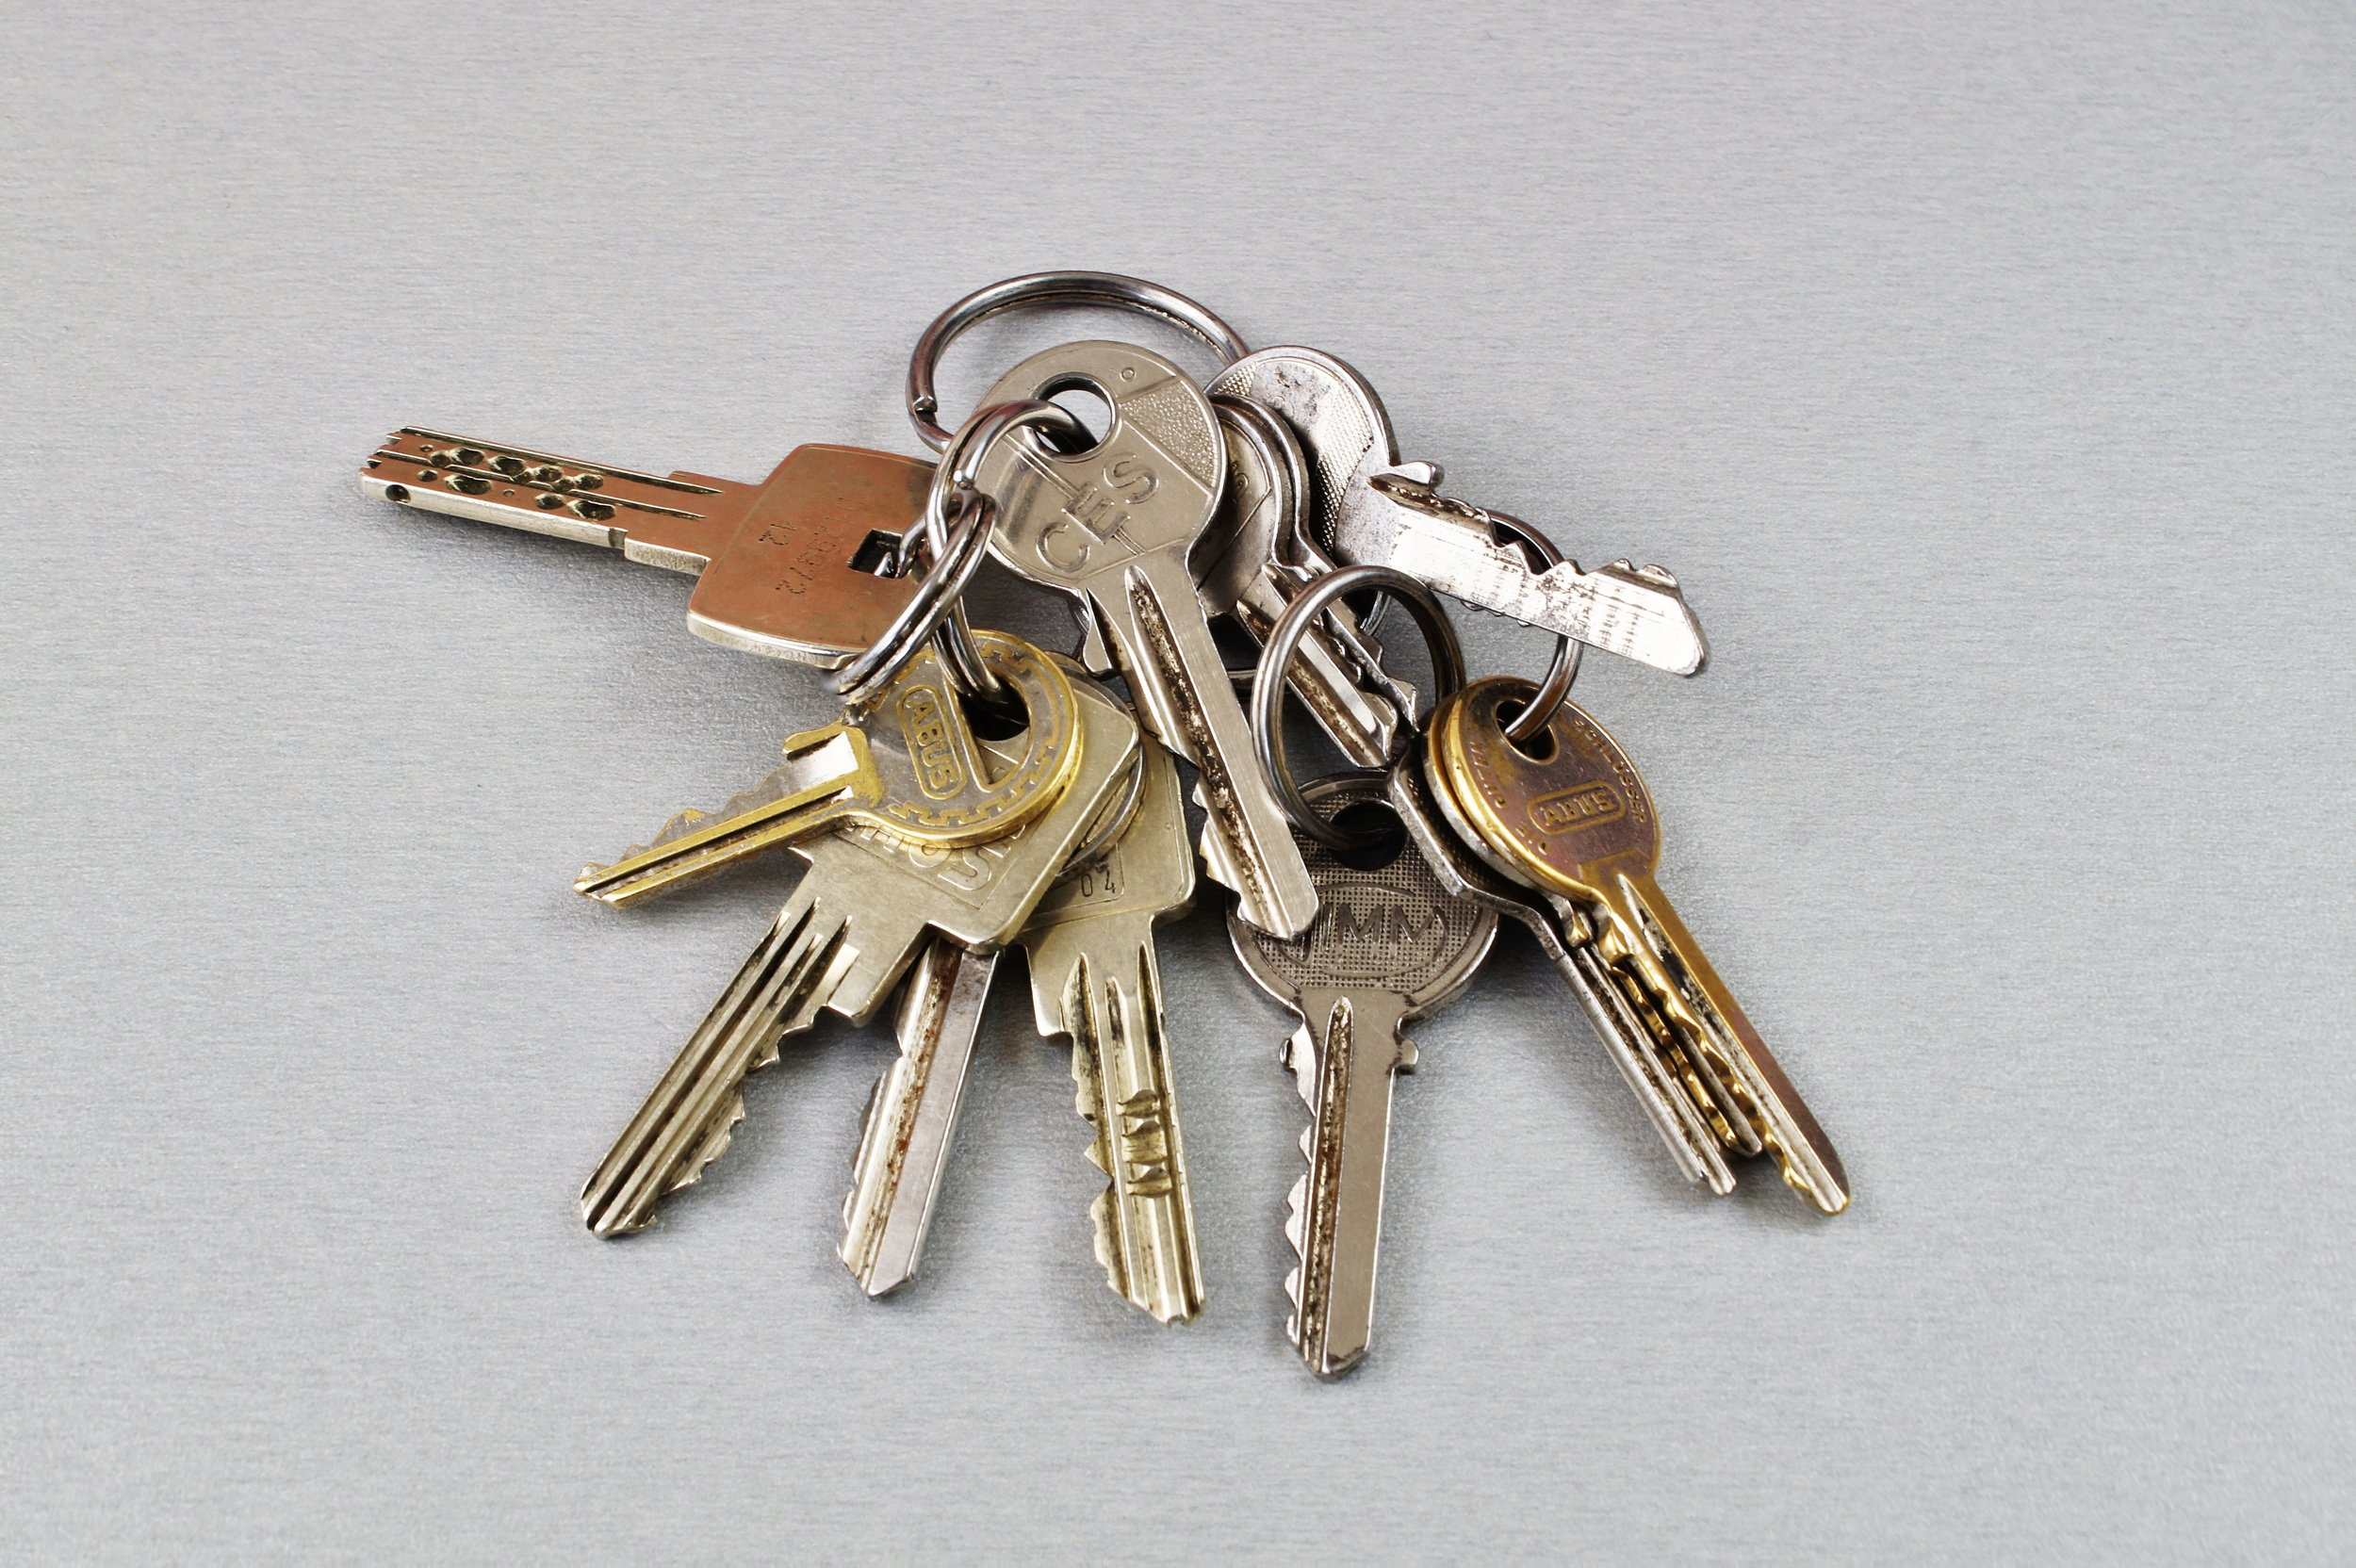 hand-key-metal-close-keychain-close-up-1214207-pxhere.com.jpg